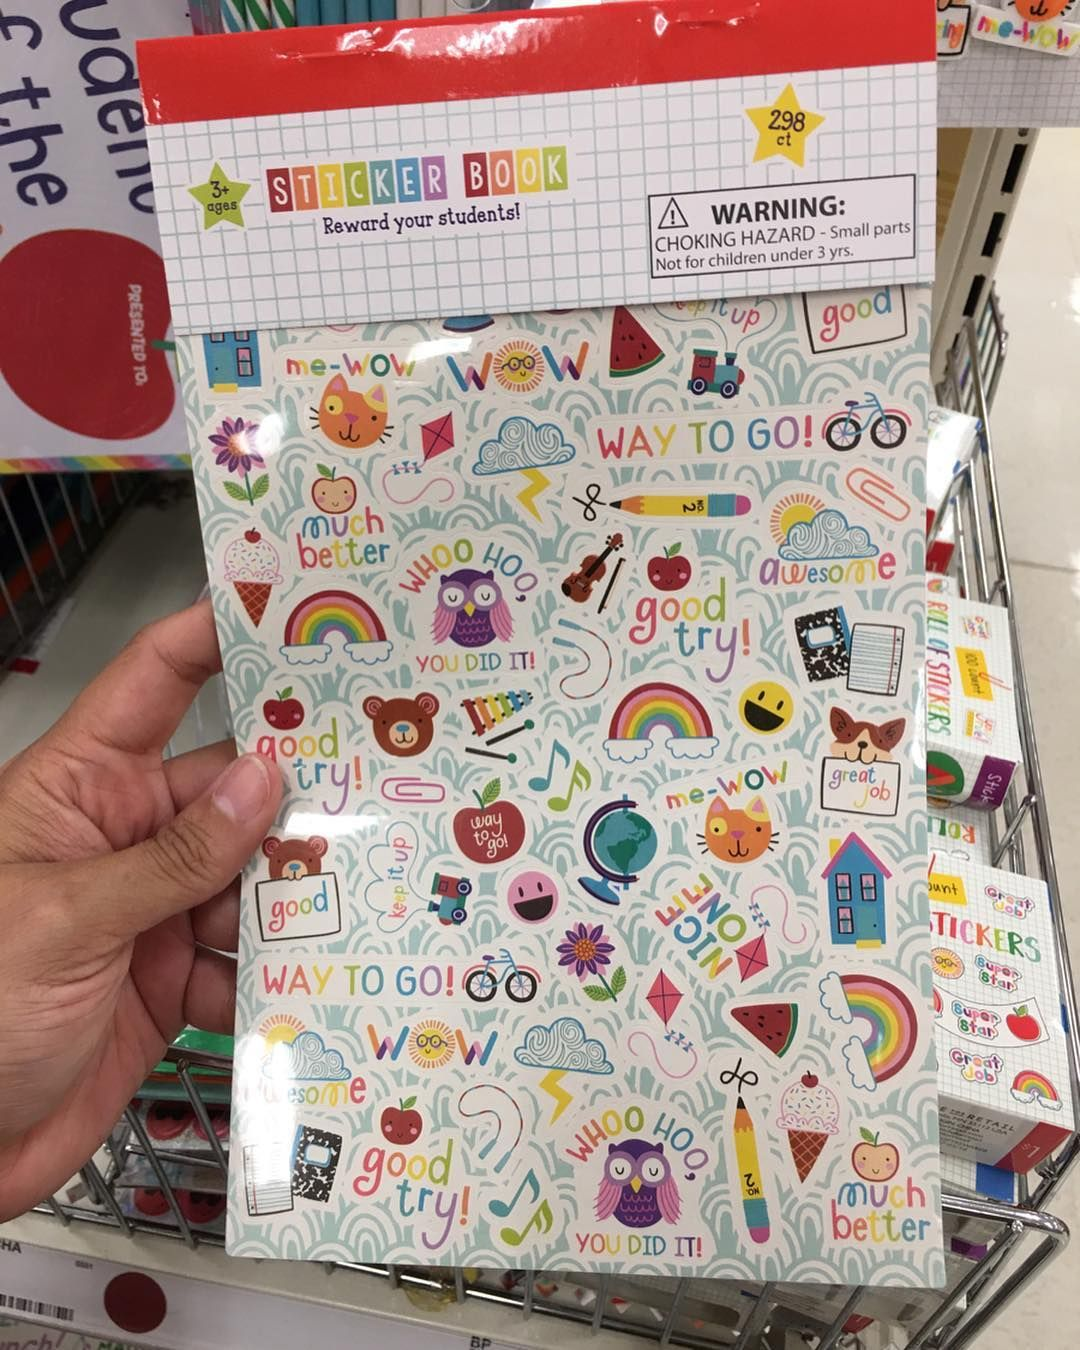 Target Pursuit On Instagram Stickers In The Back To School Section At The Target Dollar Spot Target Target Ta Target Dollar Spot Sticker Book Lol Dolls